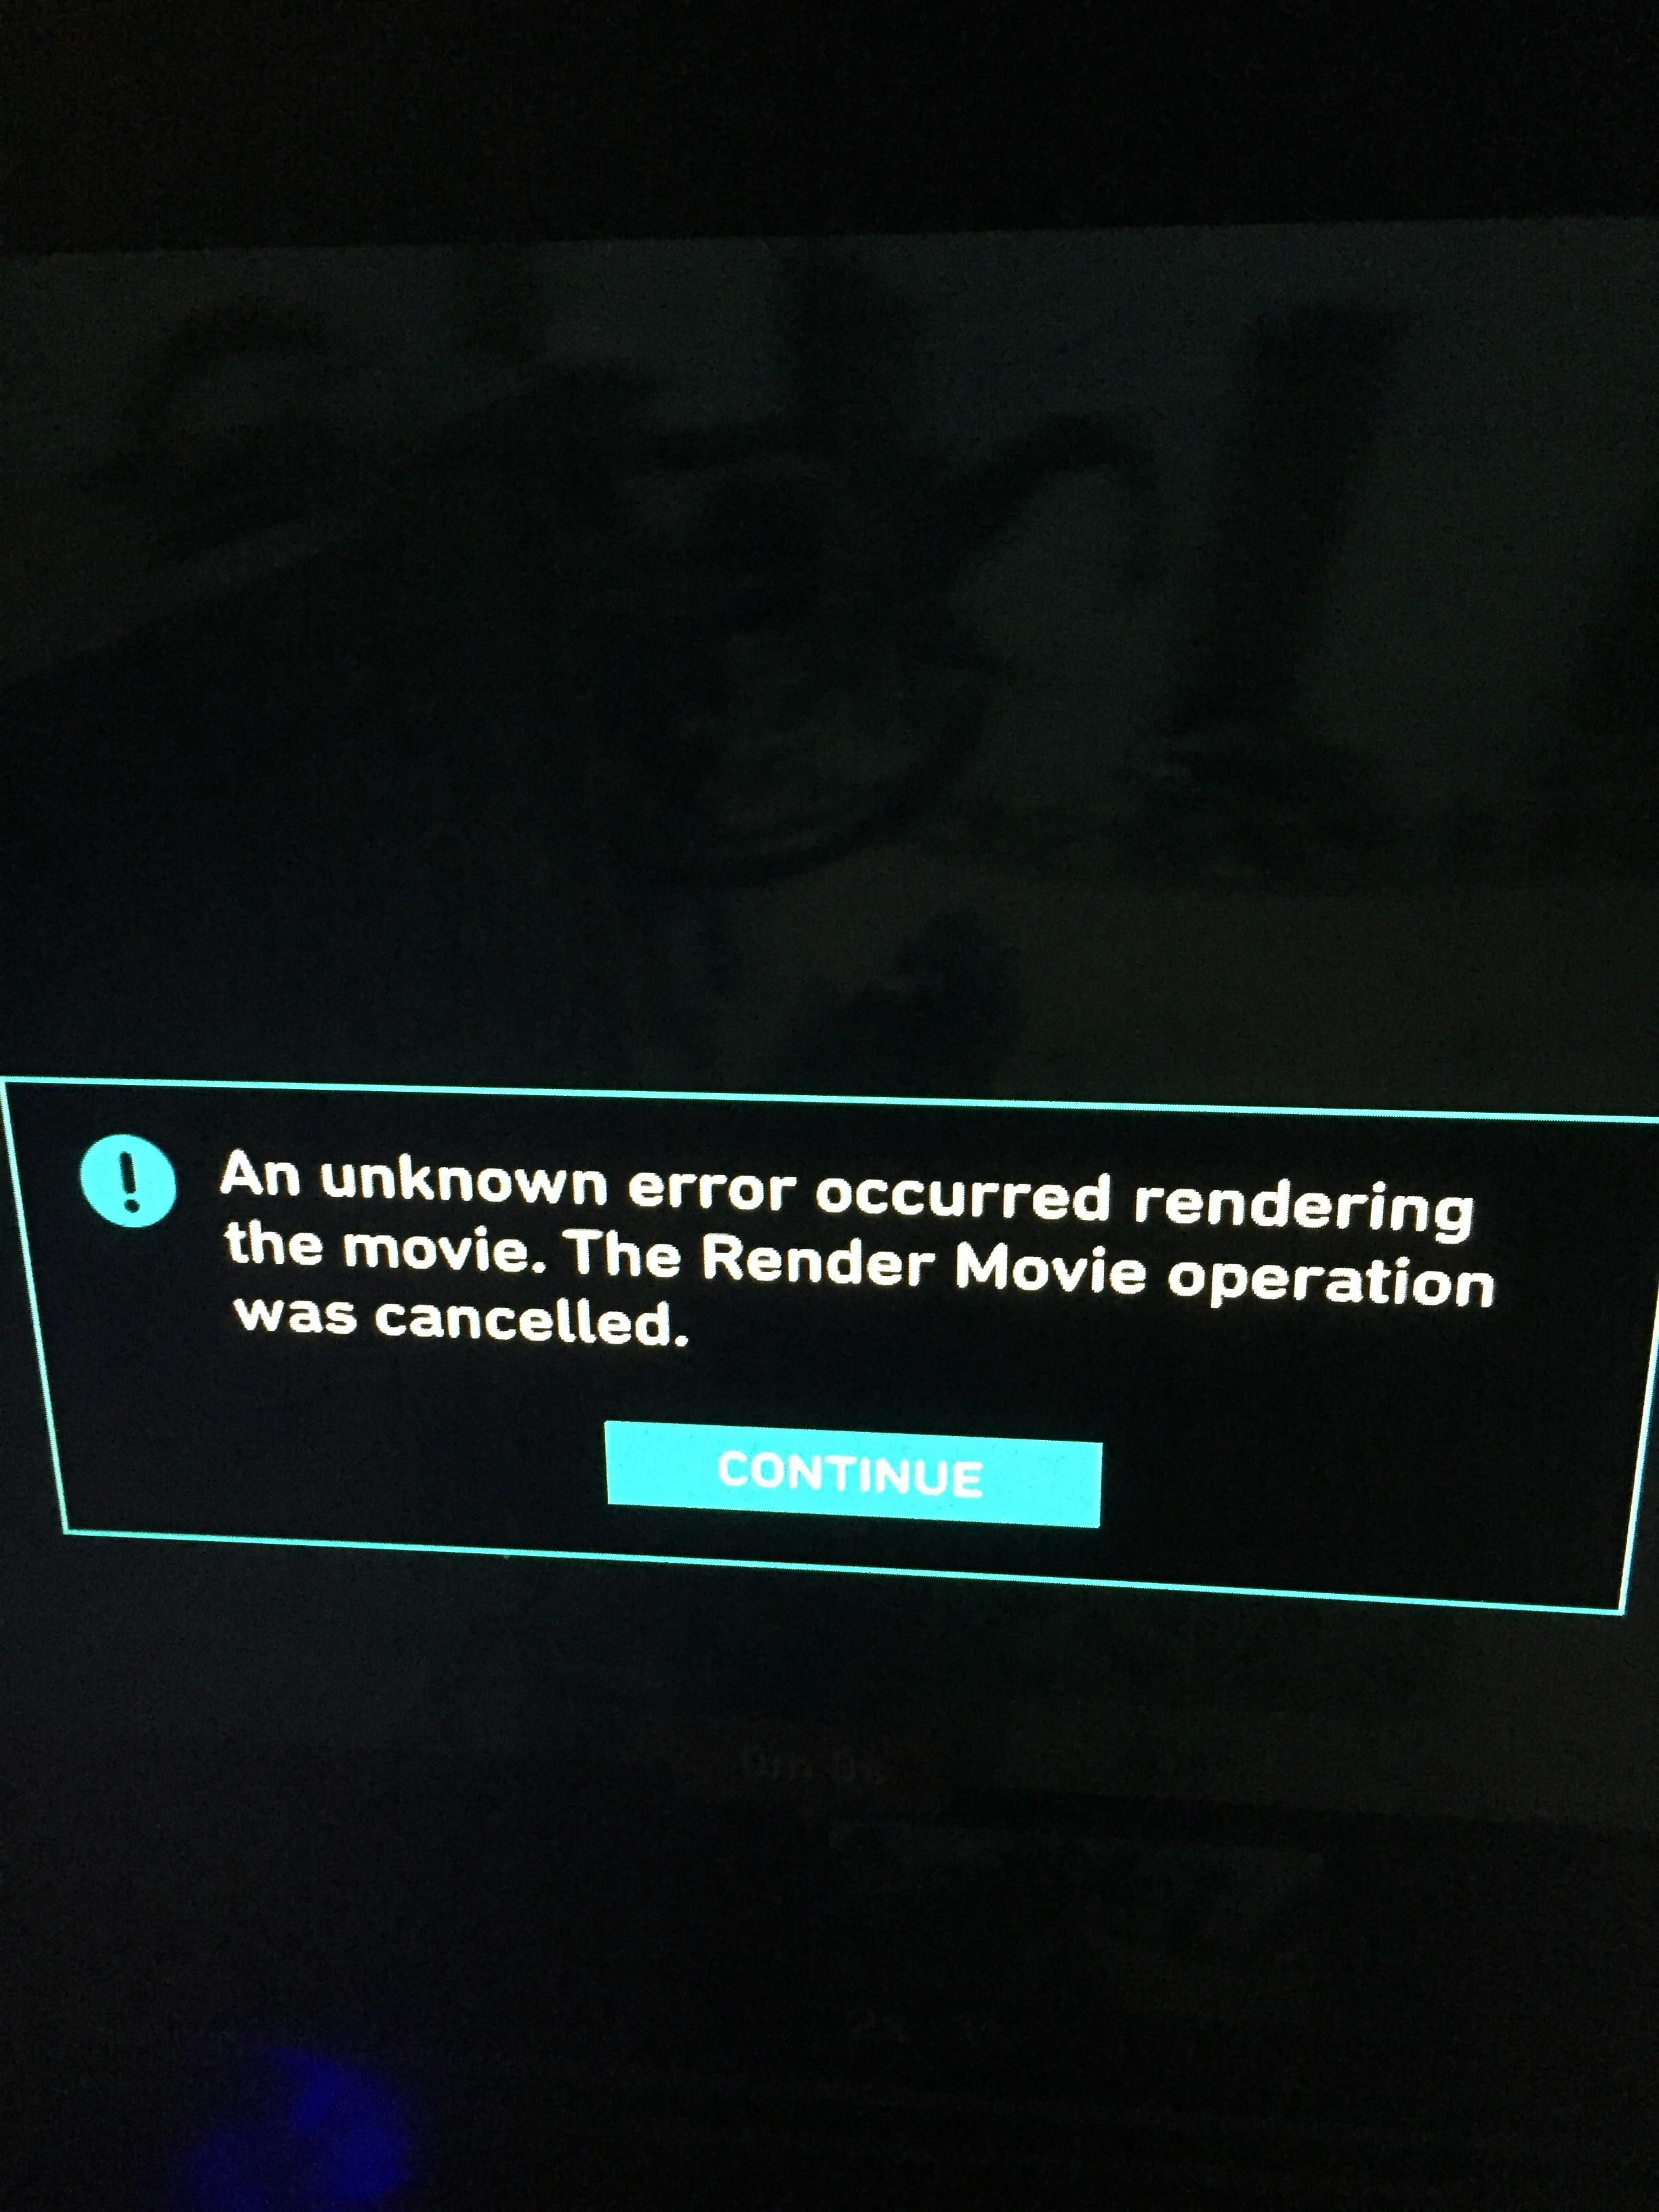 Image] Keep getting this error psn support didnt help  Can anybody